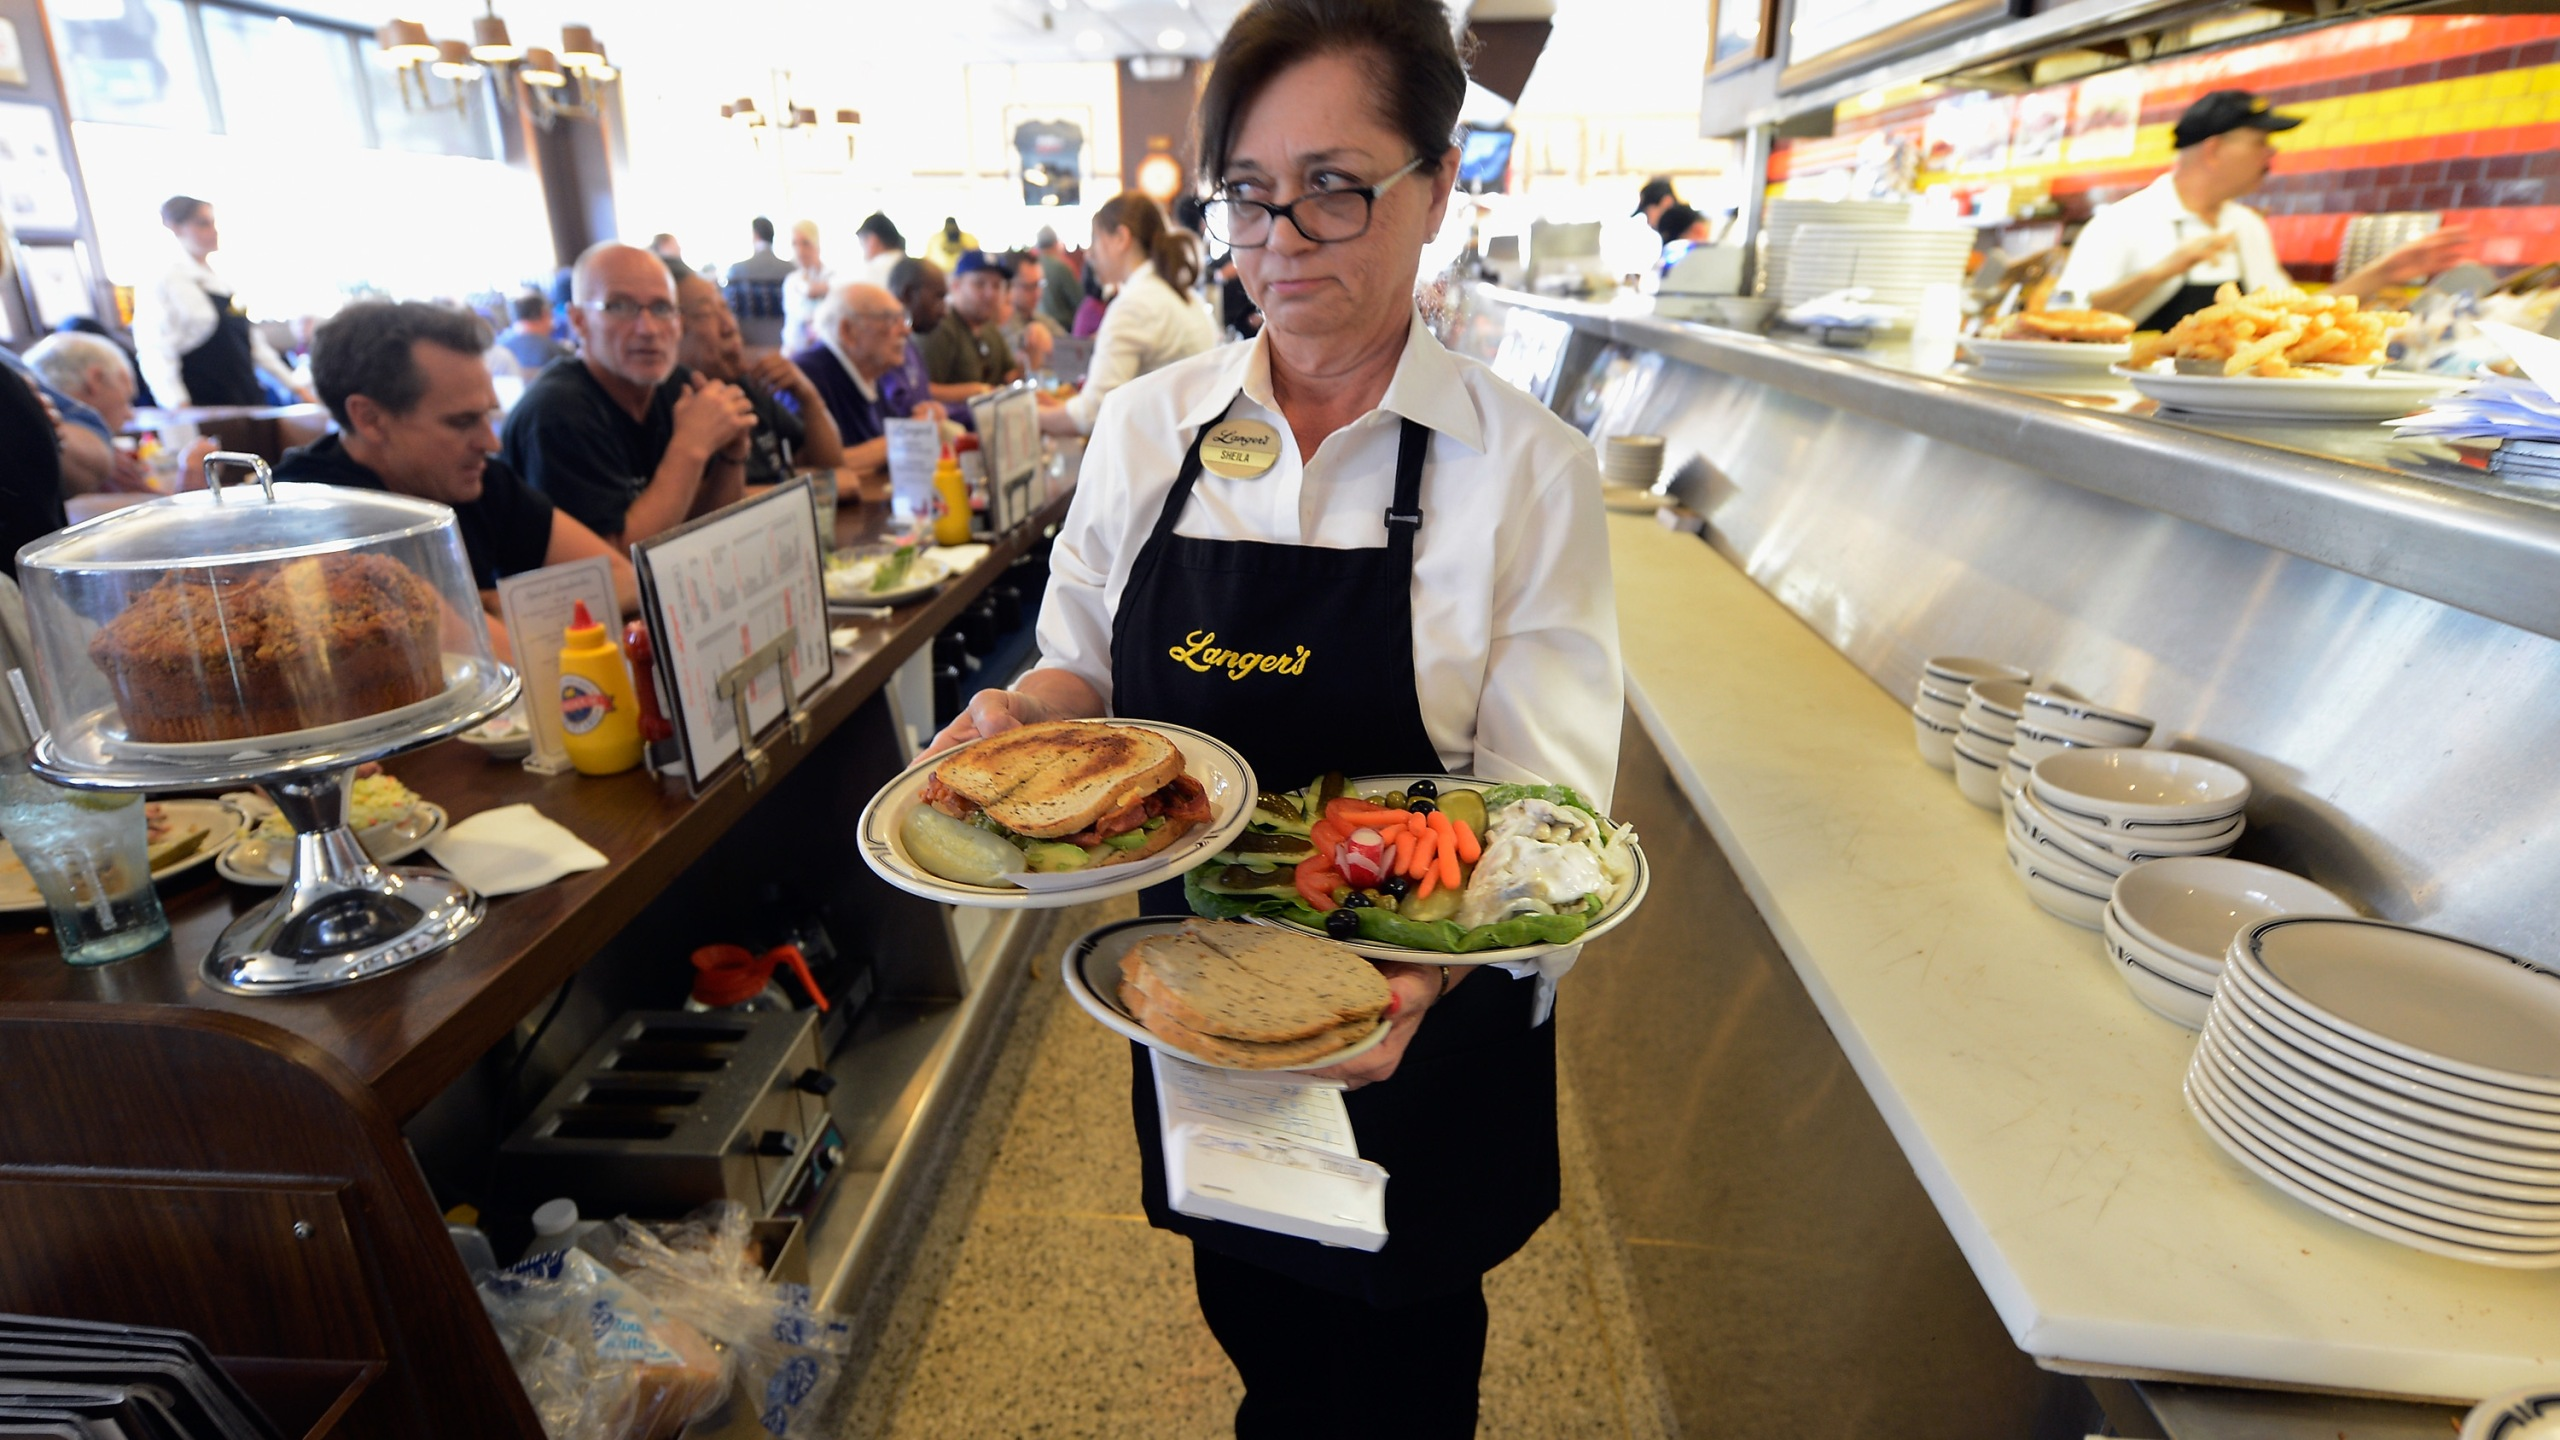 America's Jewish Delis Struggle To Stay Afloat_622551